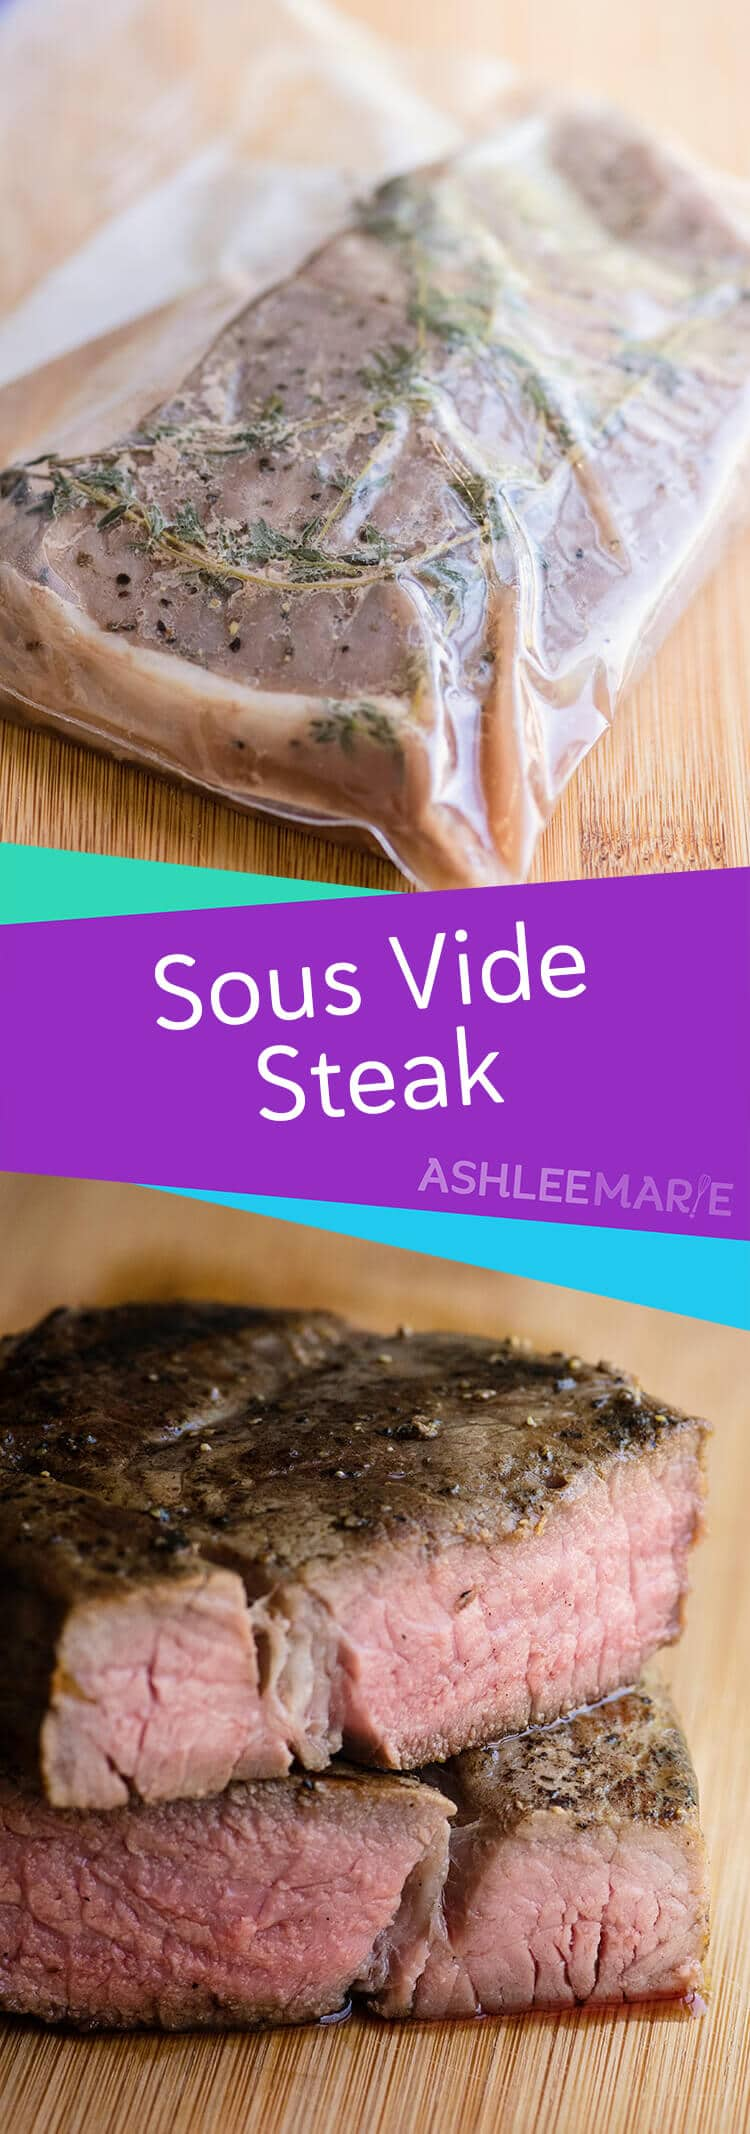 how to make the perfect medium-rare steak - sous vide cooking. This method creates melt in your mouth perfectly cooked steak that will amazing everyone.